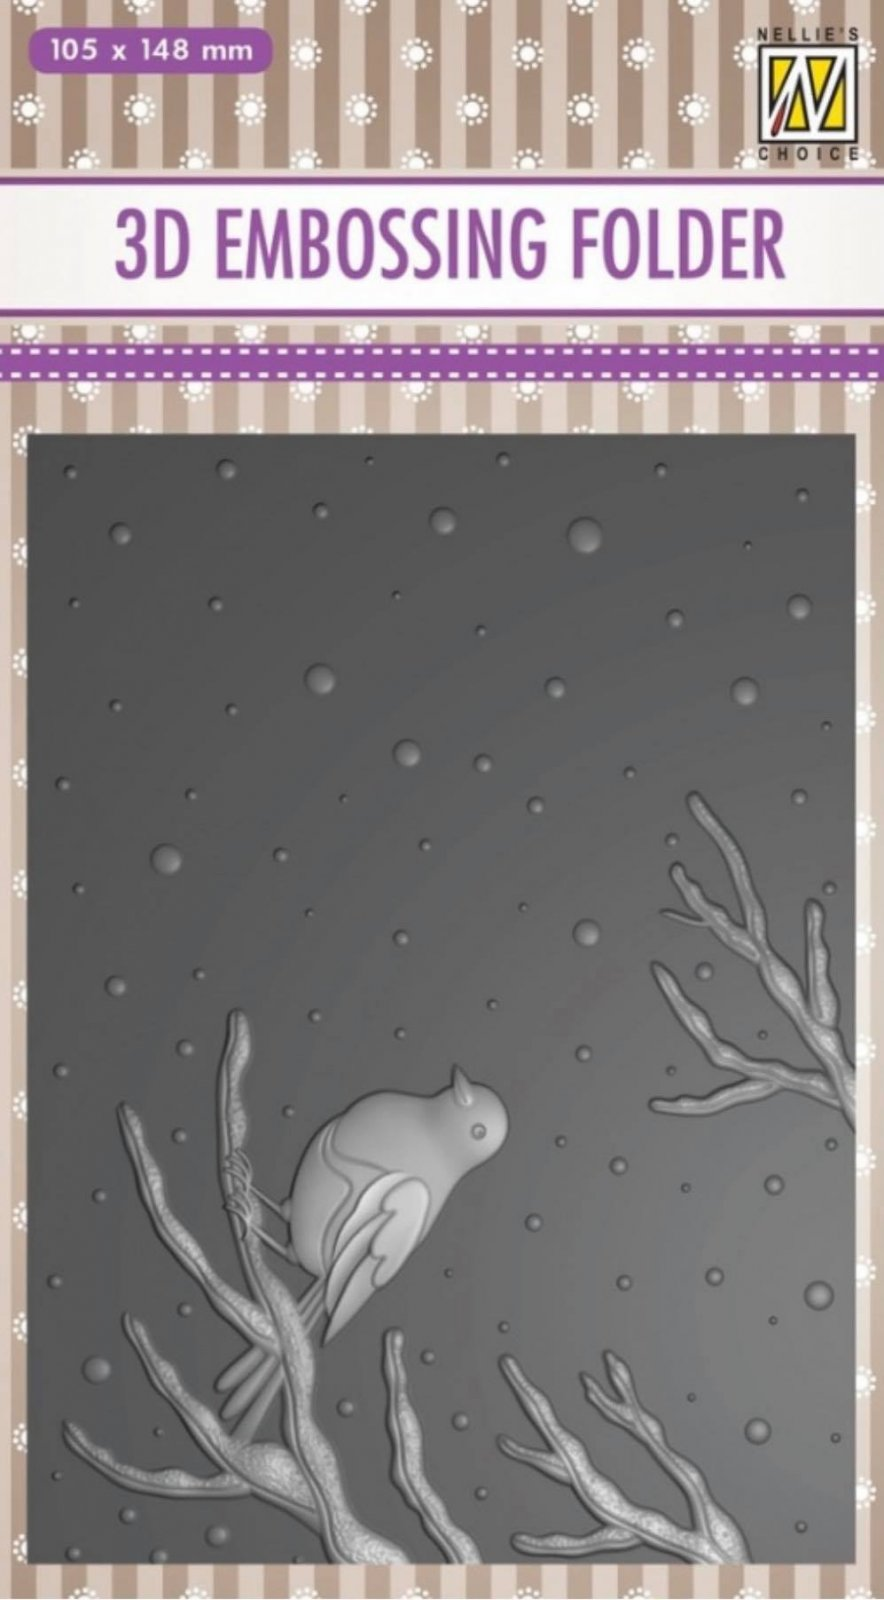 Nellie's Choice - Bird On A Branch Embossing Folder